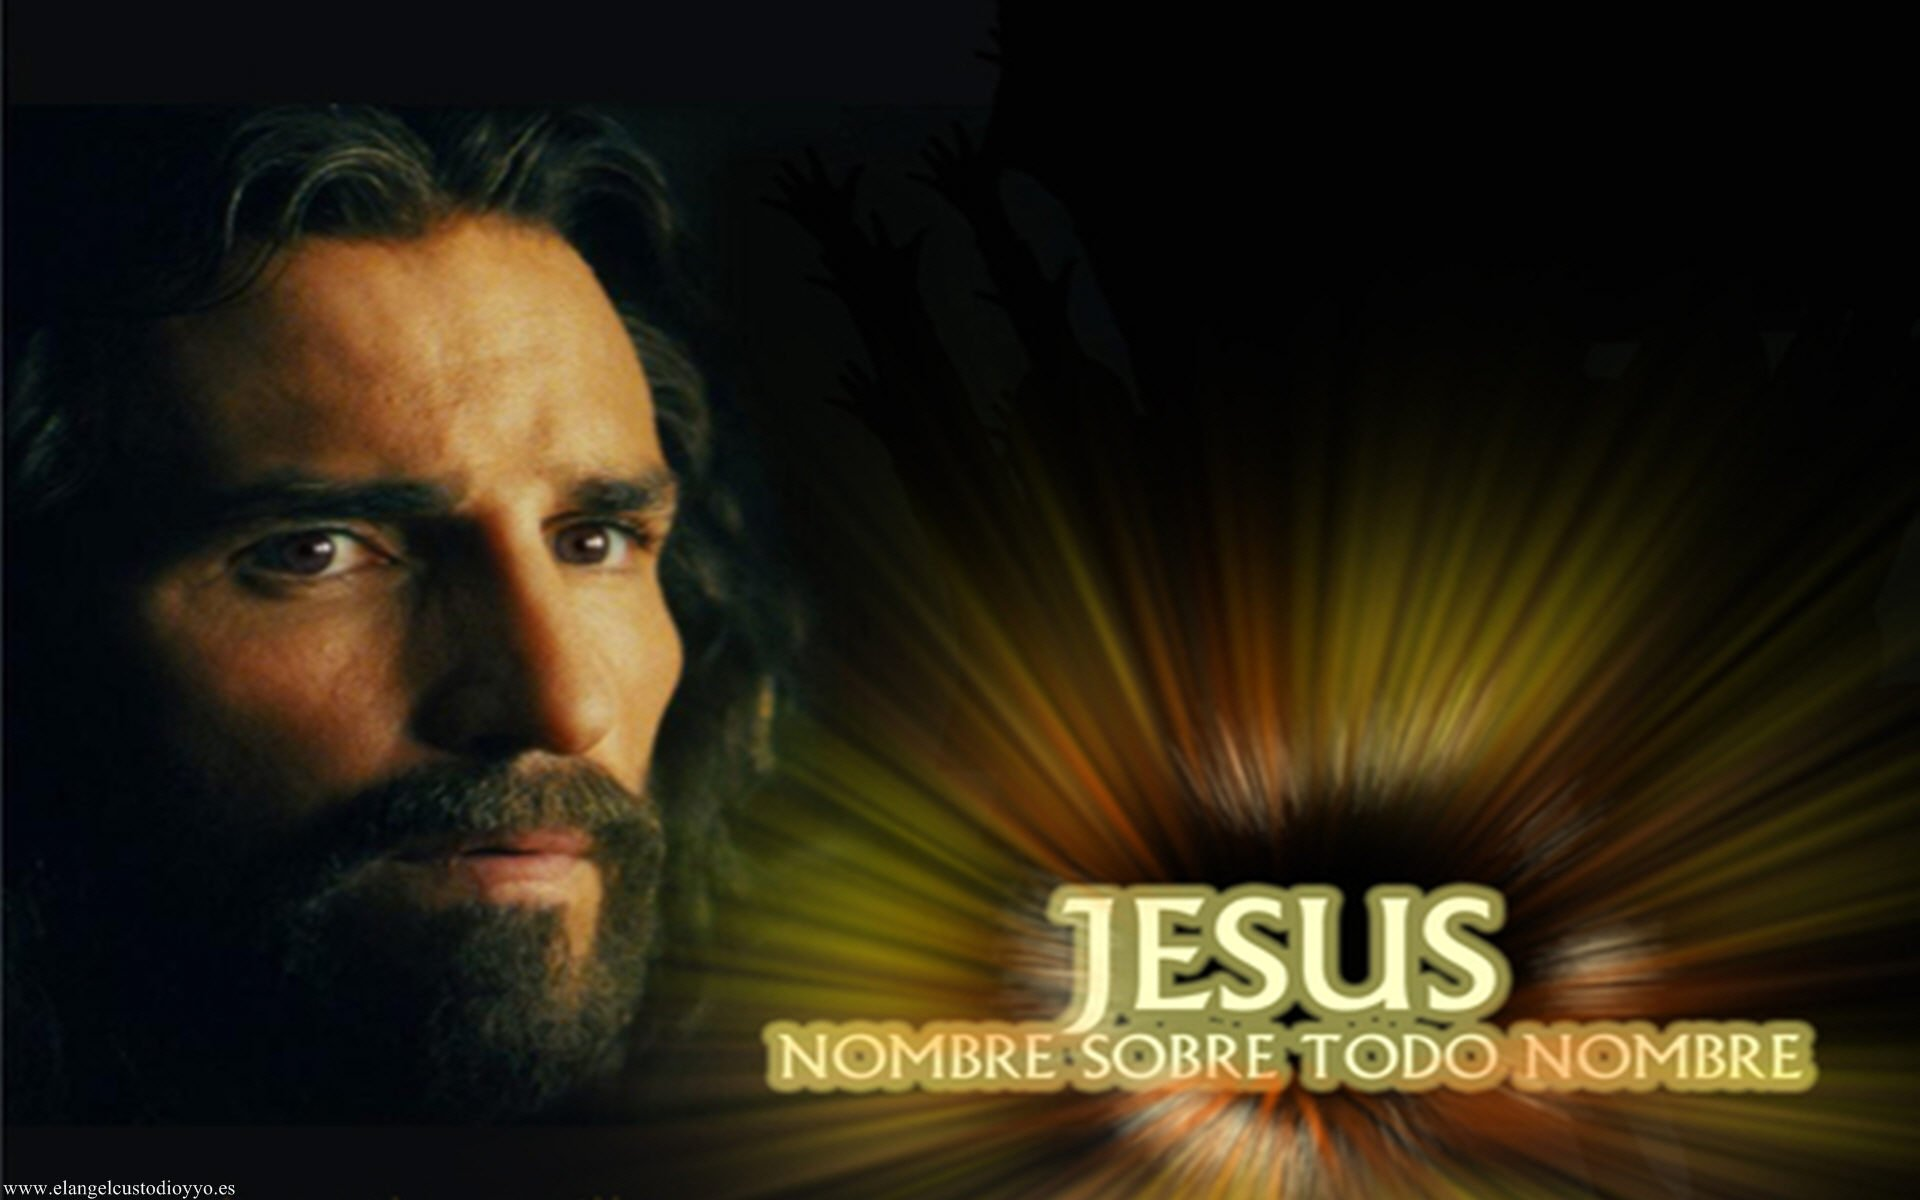 Passion of the Christ Wallpaper - WallpaperSafari